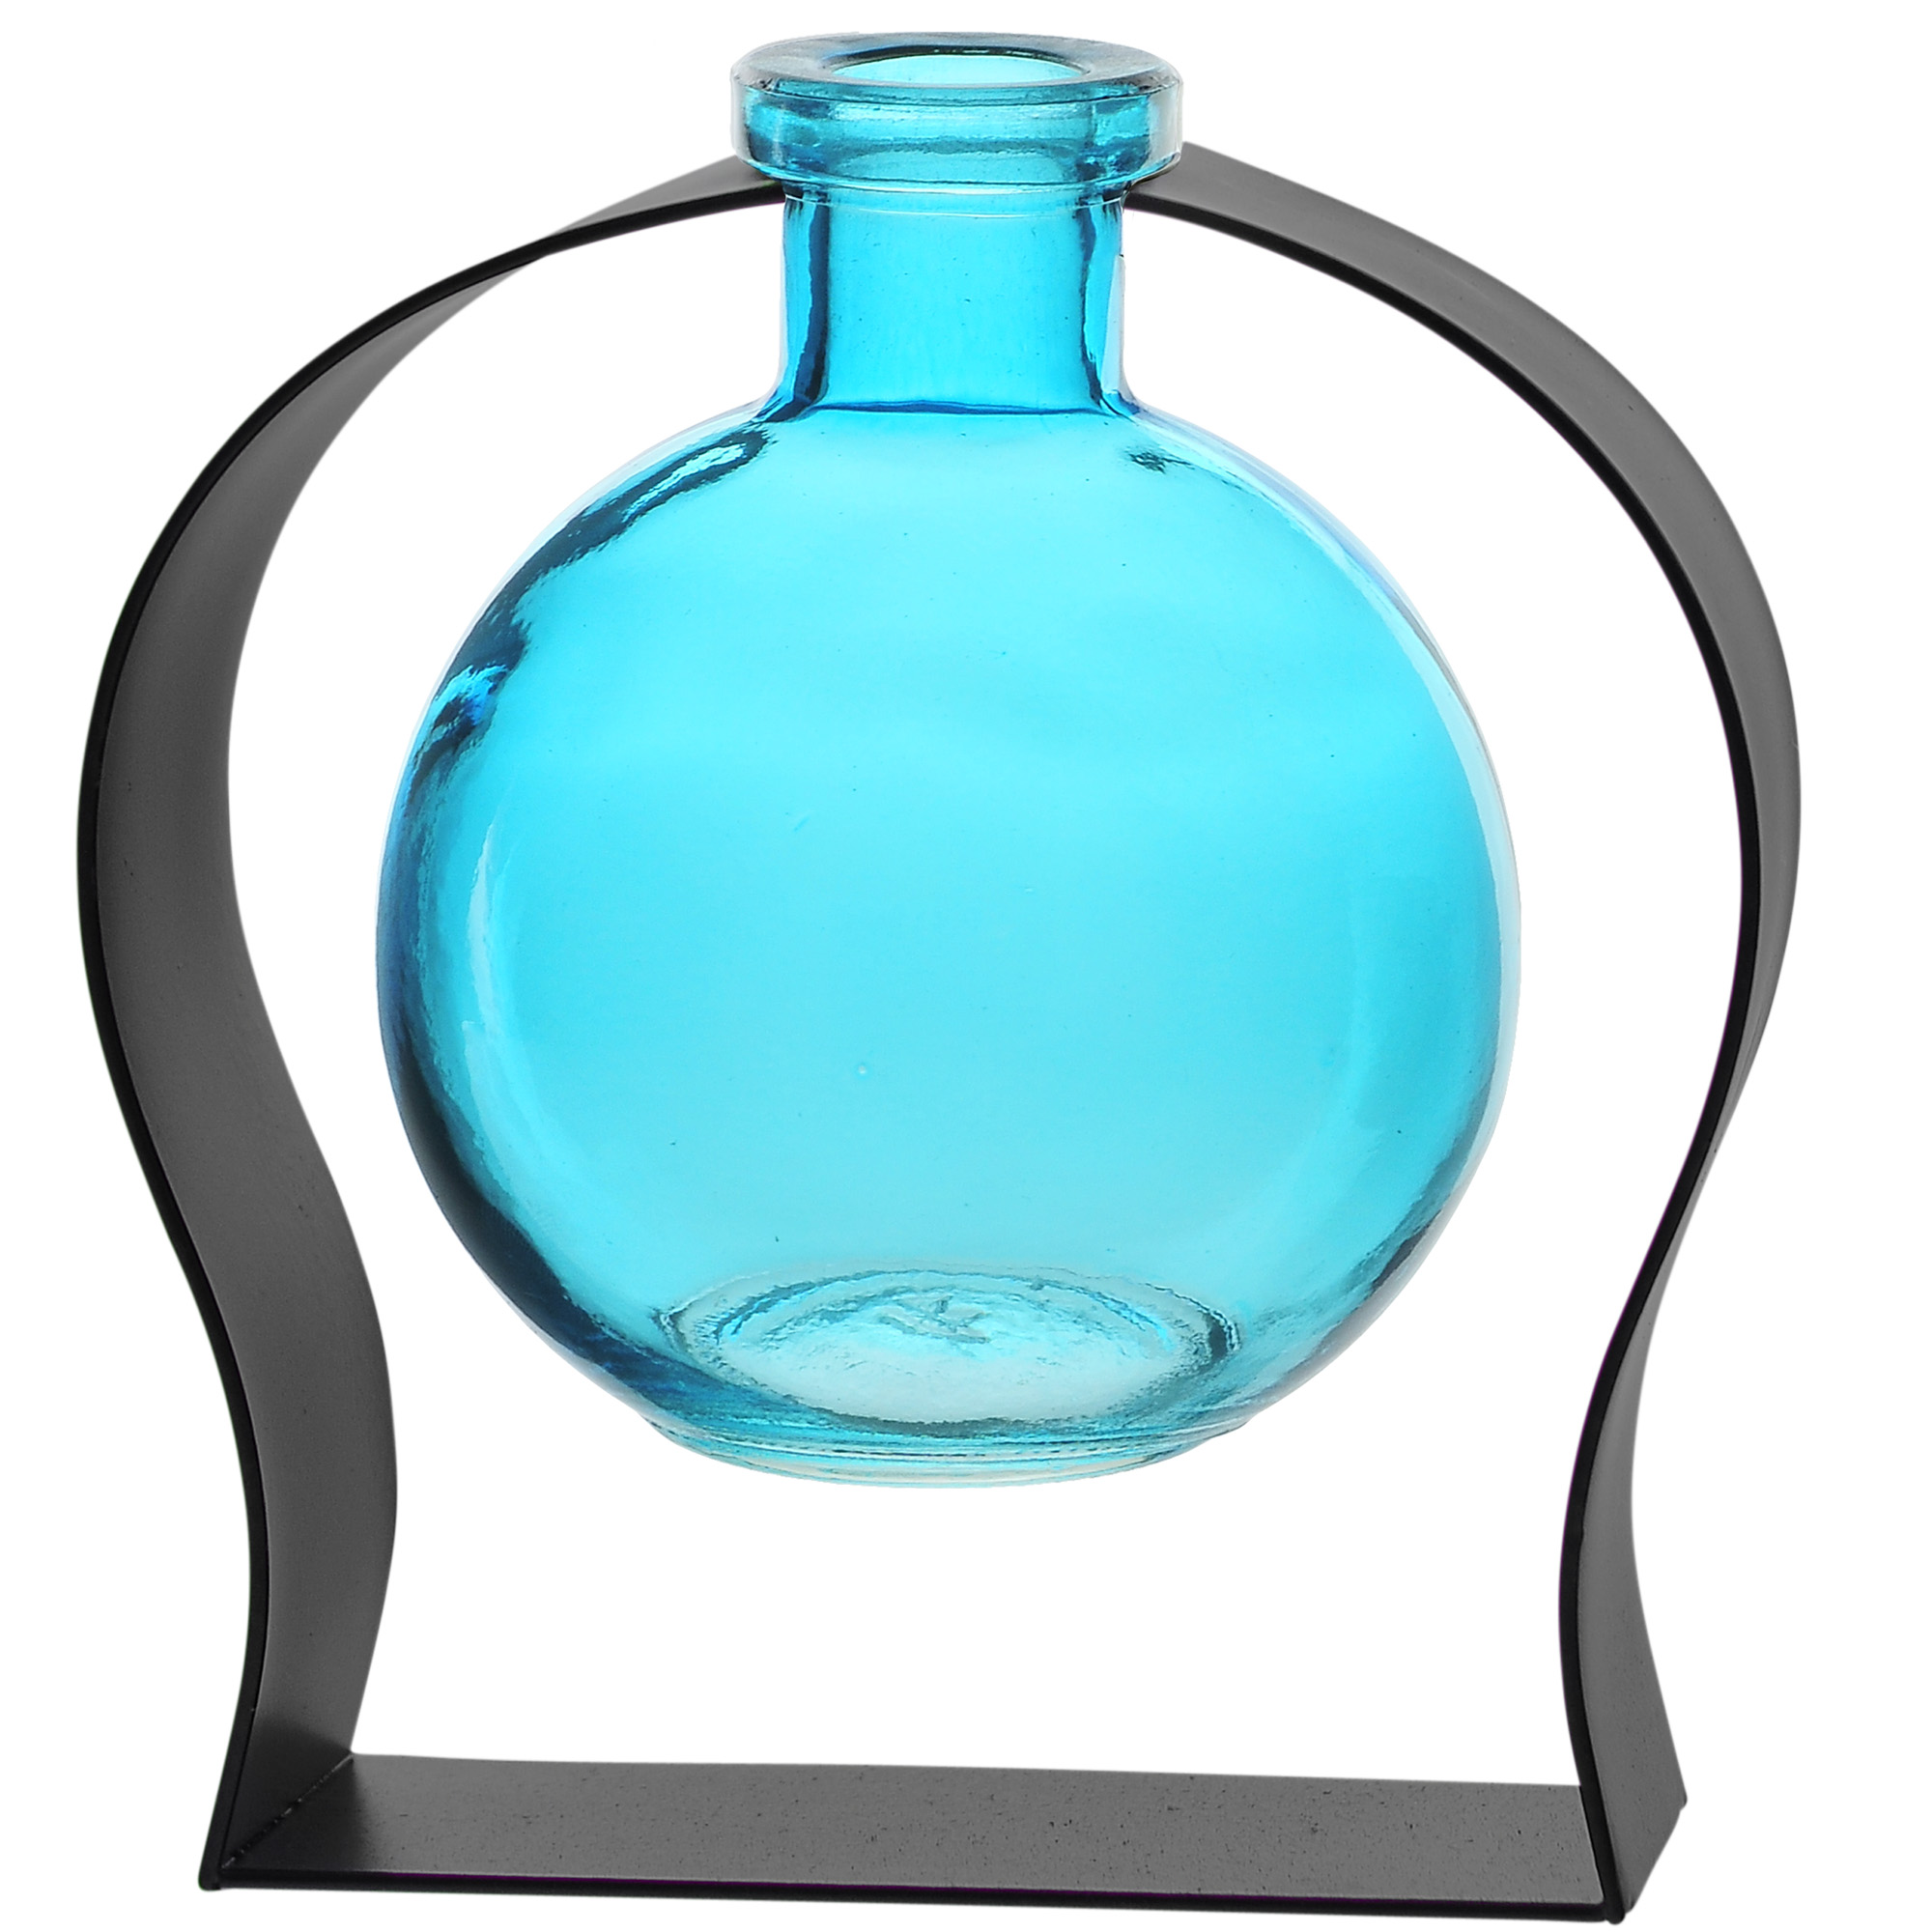 Couronne Co Ball Recycled Glass Vase and Arched Metal Stand. M244-200-00-P. 6 inches tall. 8.5 ounces. Clear - Walmart.com - Walmart.com